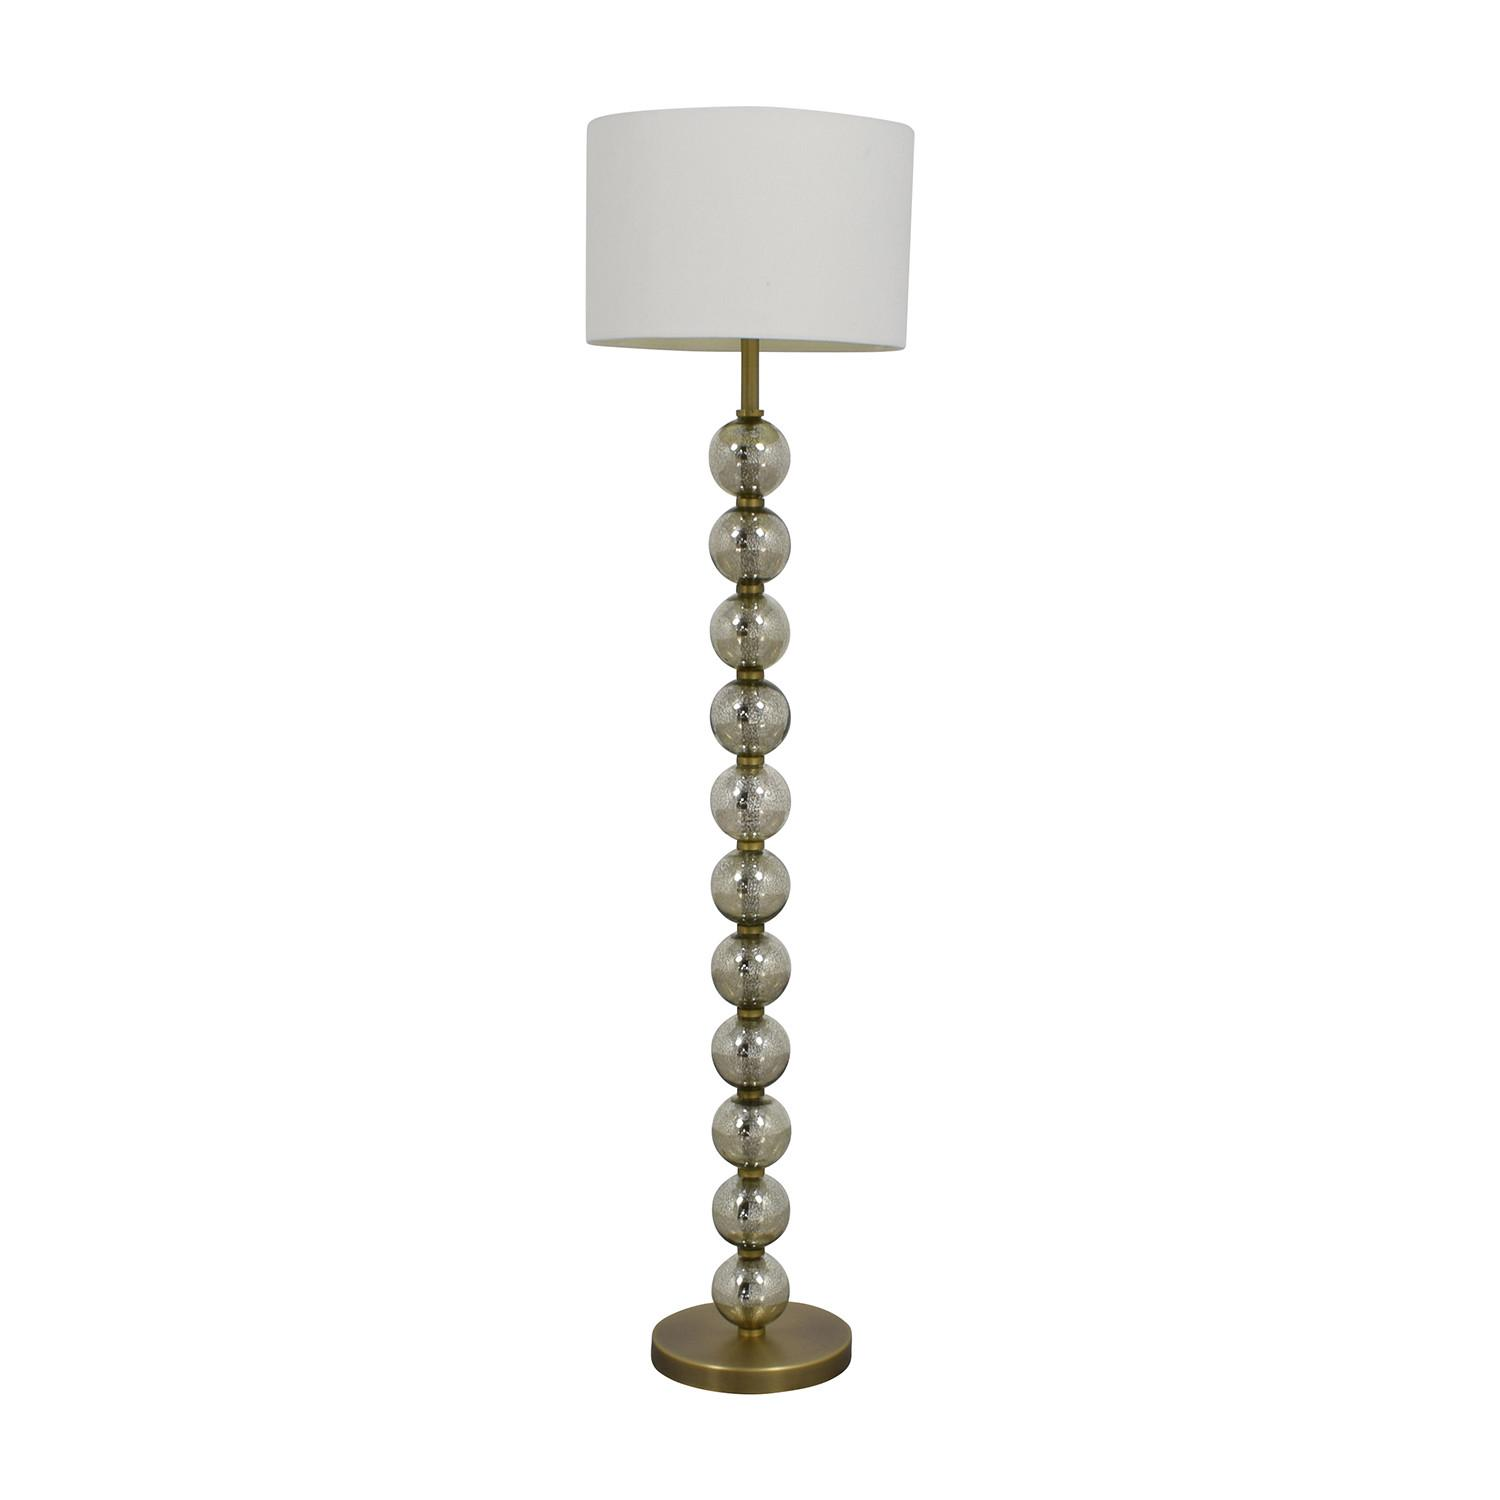 Wall Light Fixture Freight Contracted Led Decorative